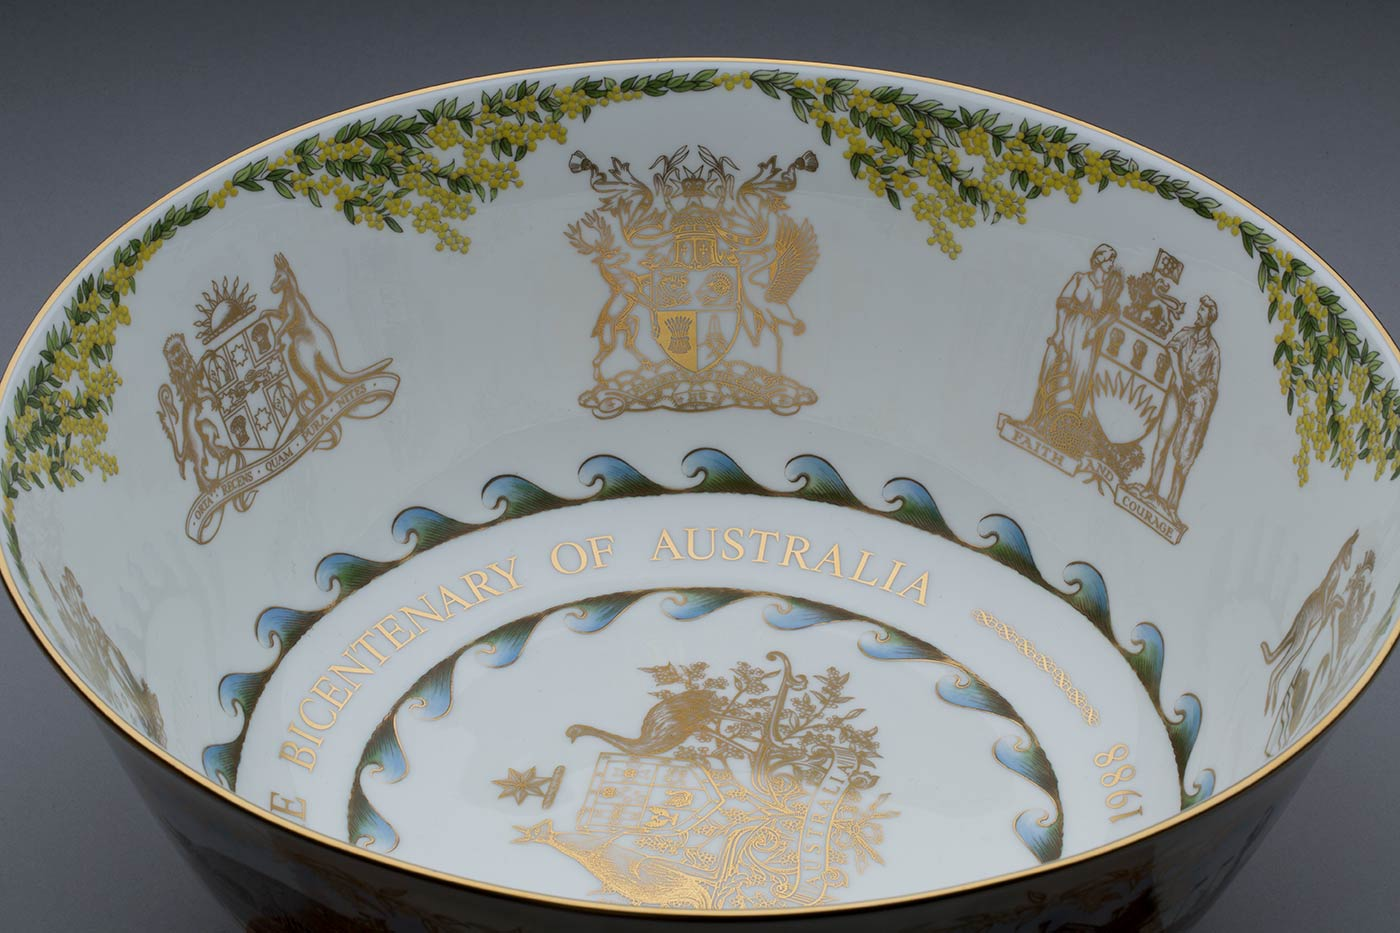 Commemorative hand-painted bone china bowl. The bowl is made of fine bone china, which is composed of feldspathic rock, English china clay, and about fifty percent calcined animal bone. The inside of the bowl features a border of wattle and the coat of arms of each State, Territory, and the Commonwealth of Australia, in 24 carat gold. 'To Commemorate the Bicentenary of Australia 1788-1988' encircle the inside base. A wave motif surrounds the words, symbolising Australia's ties with Britain and countries around the world. Hand-painted scenes of the national capital decorate the outside of the bowl. From left to right they are the Old Parliament House; the Australian War Memorial; the High Court; the Carillon; Duntroon House; Blundell's Cottage; St John's Church; Black Mountain Tower; the Australian Academy of Science; the Captain Cook Memorial Water Jet; Government House; and the Ethos Statue in Civic Square. - click to view larger image